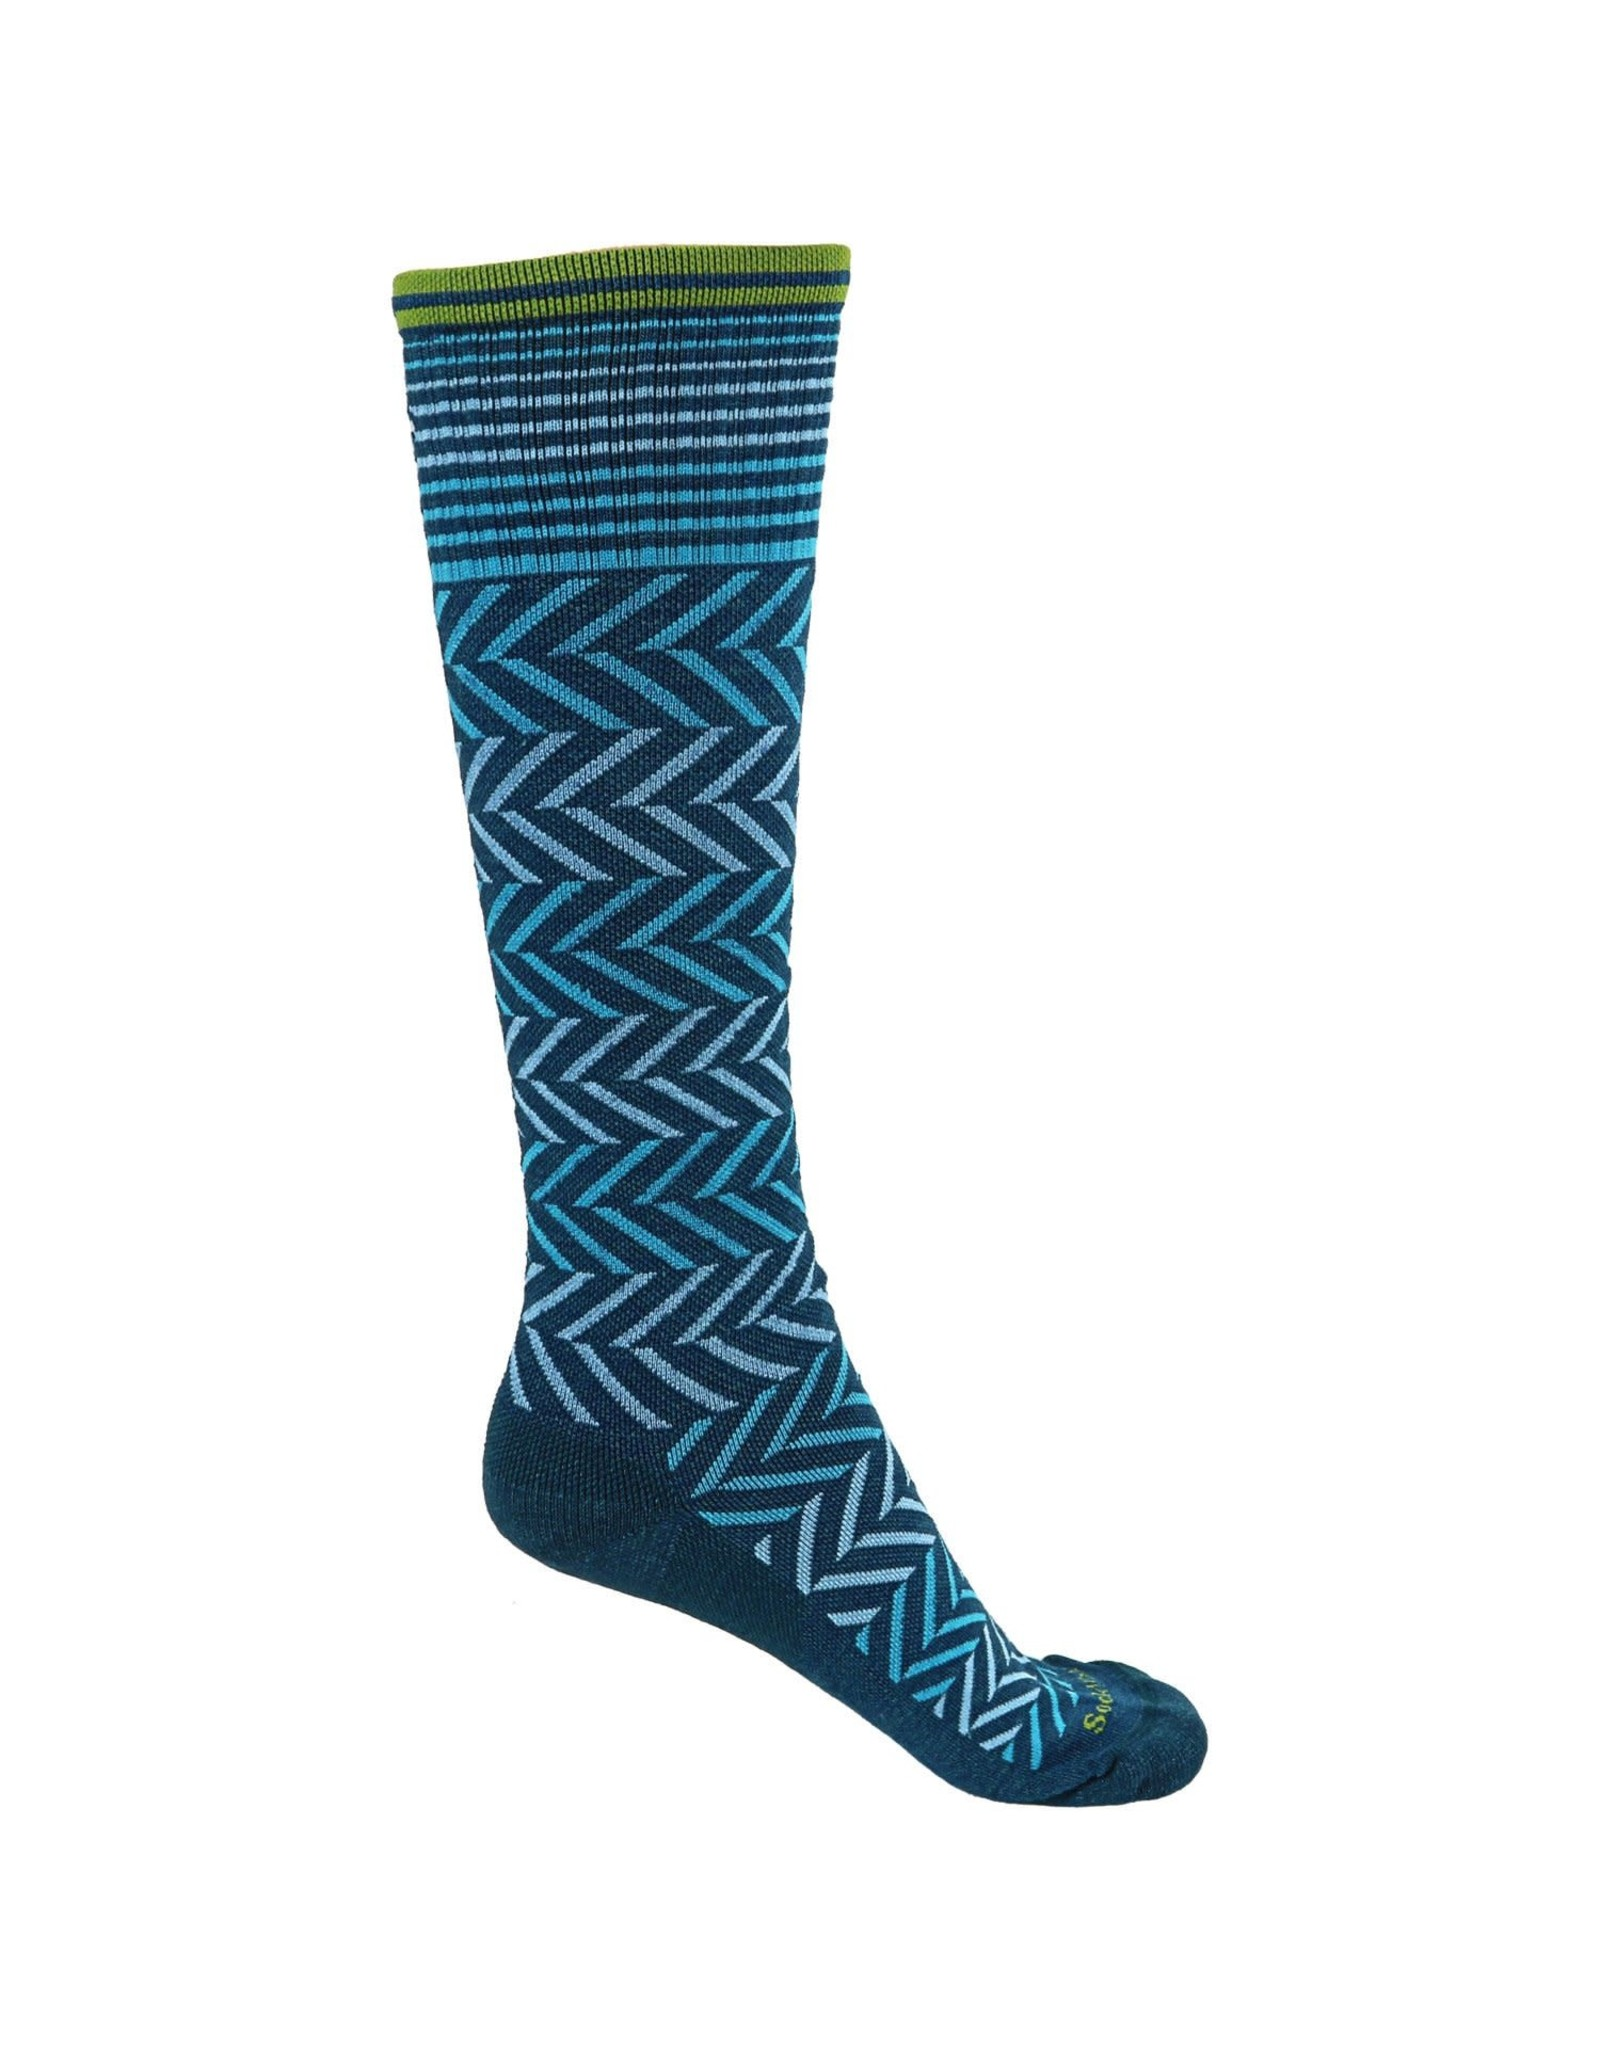 Sockwell Compression Chevron Teal S-M